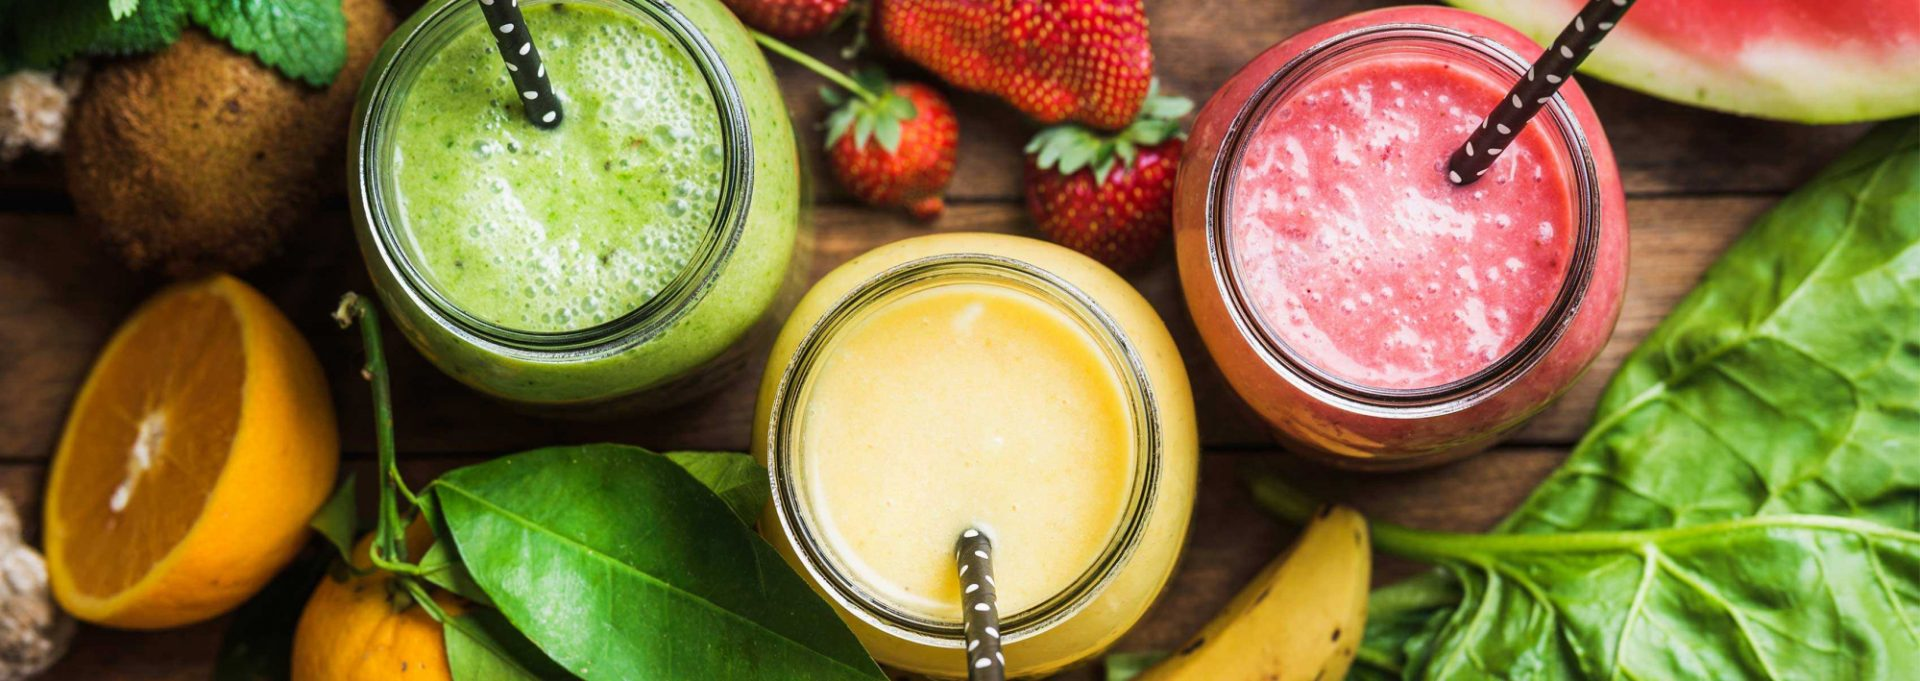 Three multicolored smoothies in jars with straws.